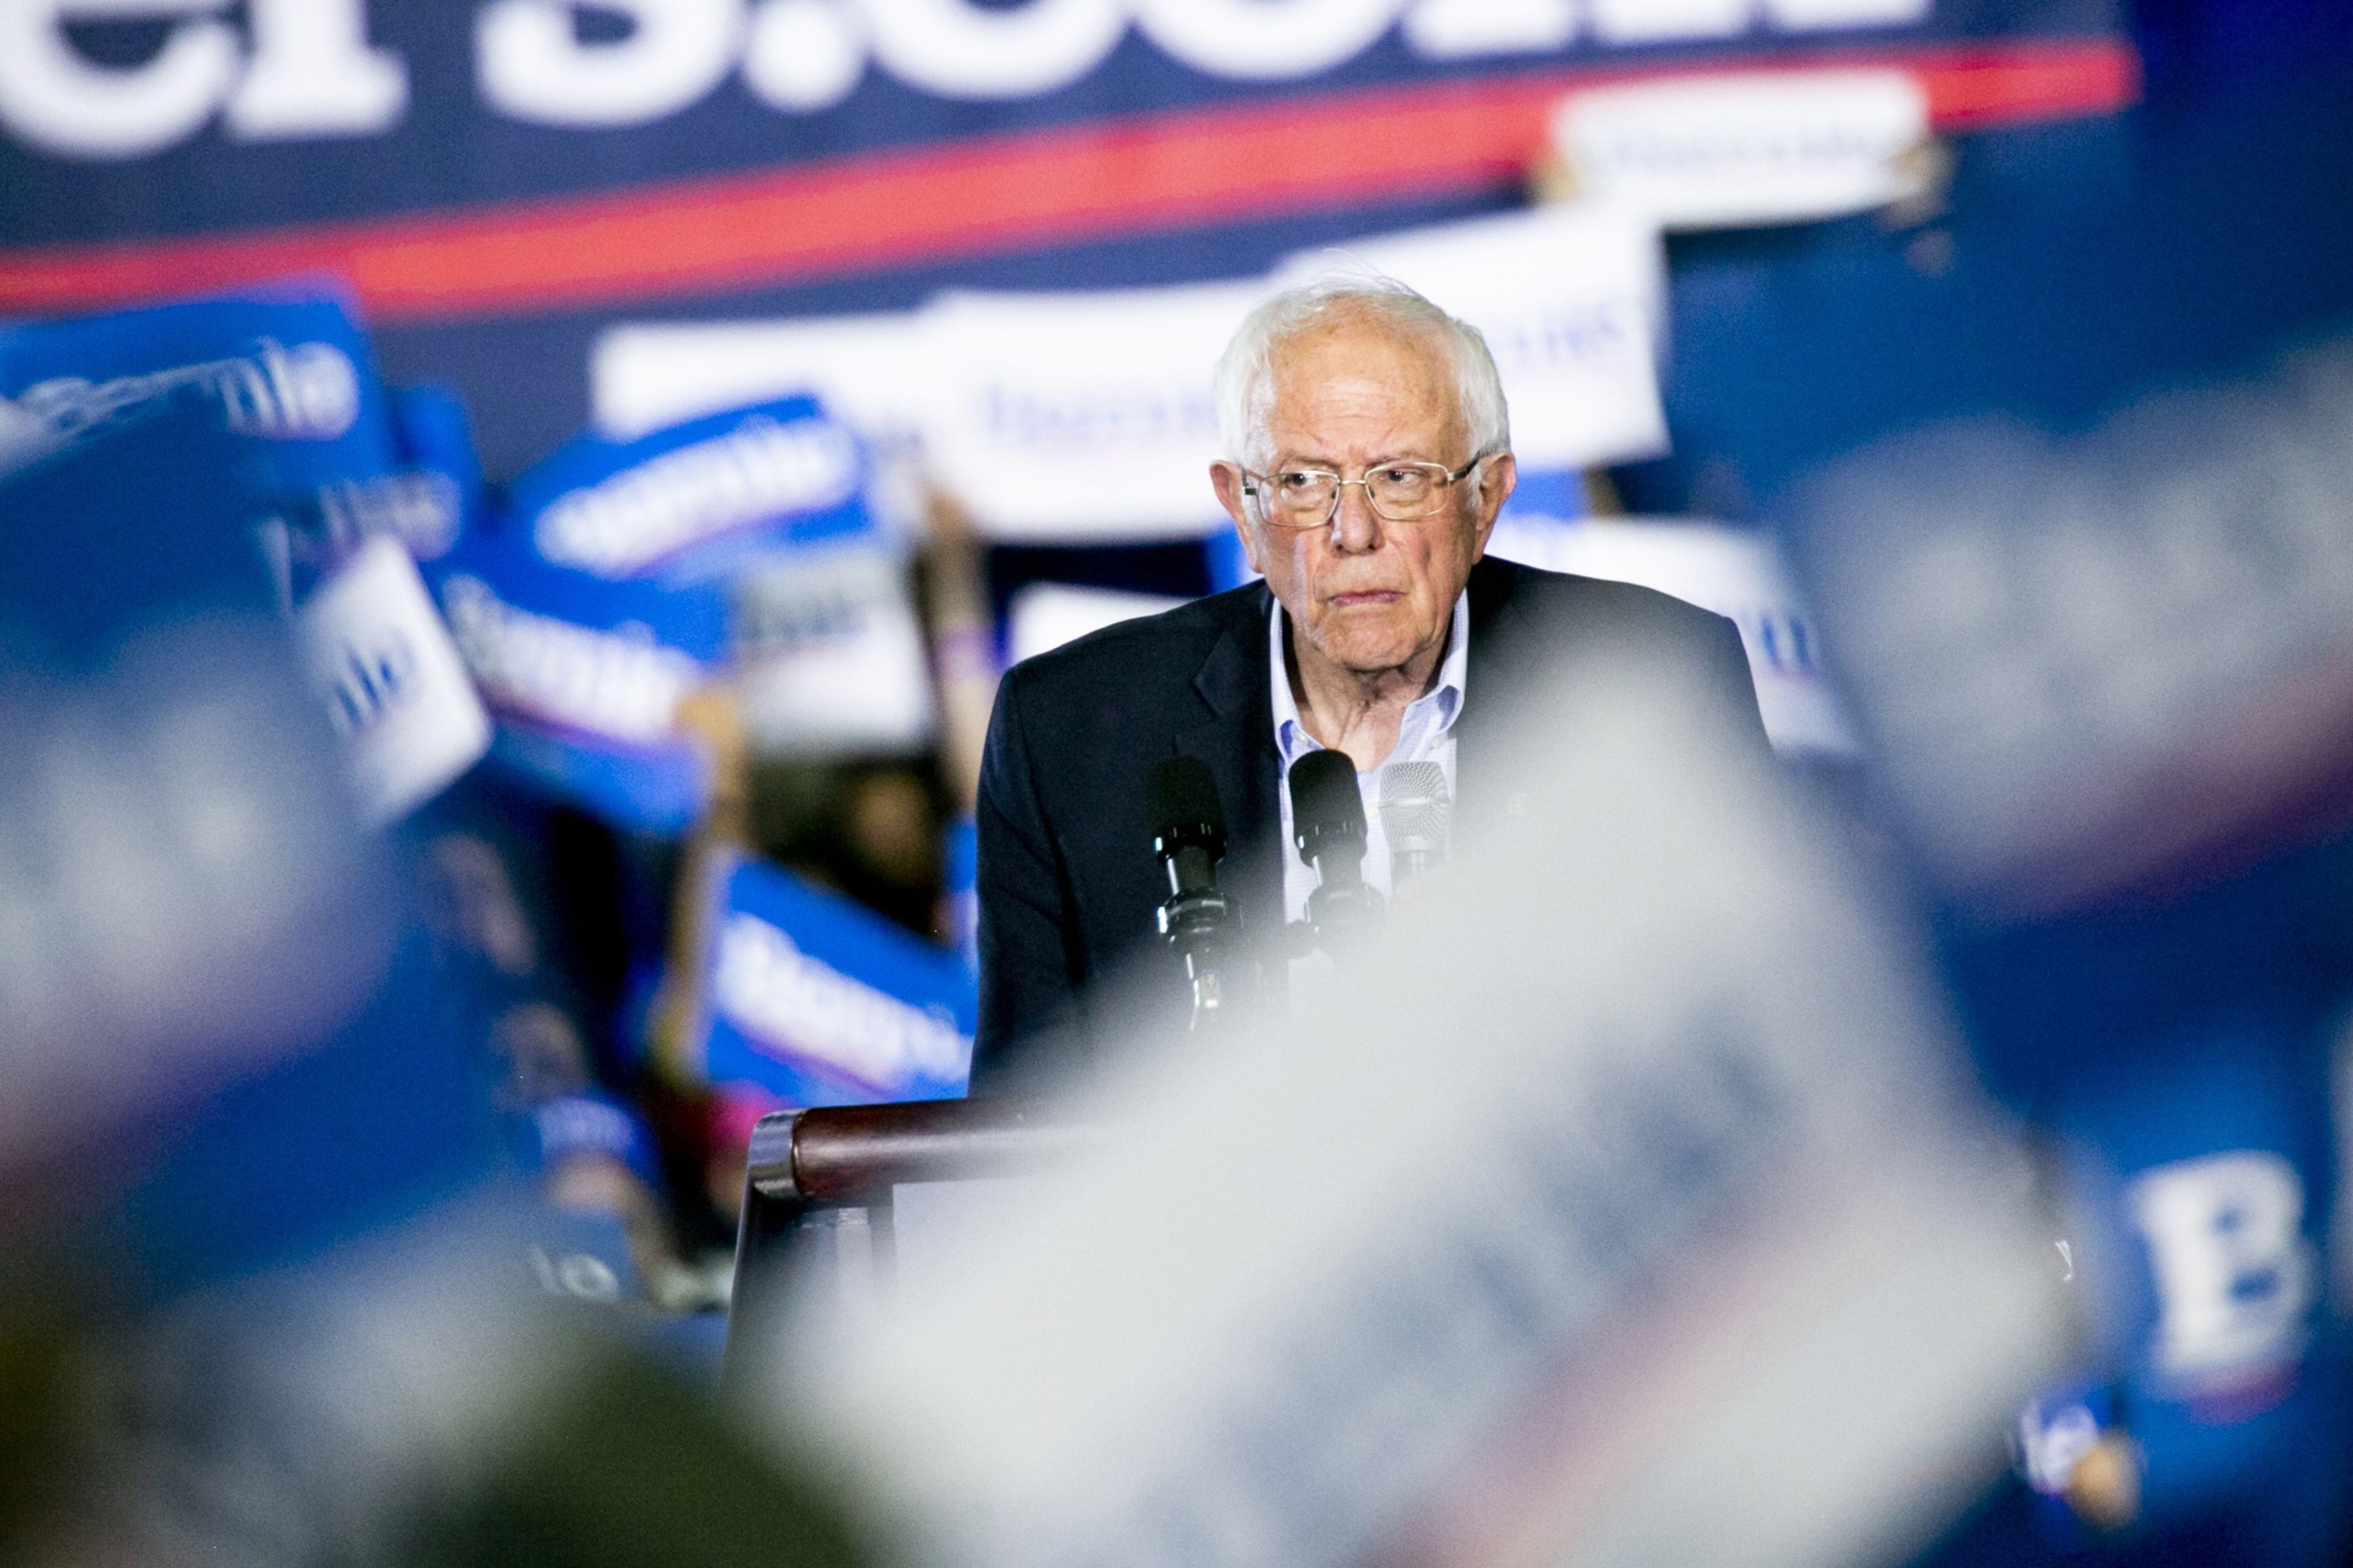 After spending more than $76 million on advertising, Bernie Sanders ends his White House bid